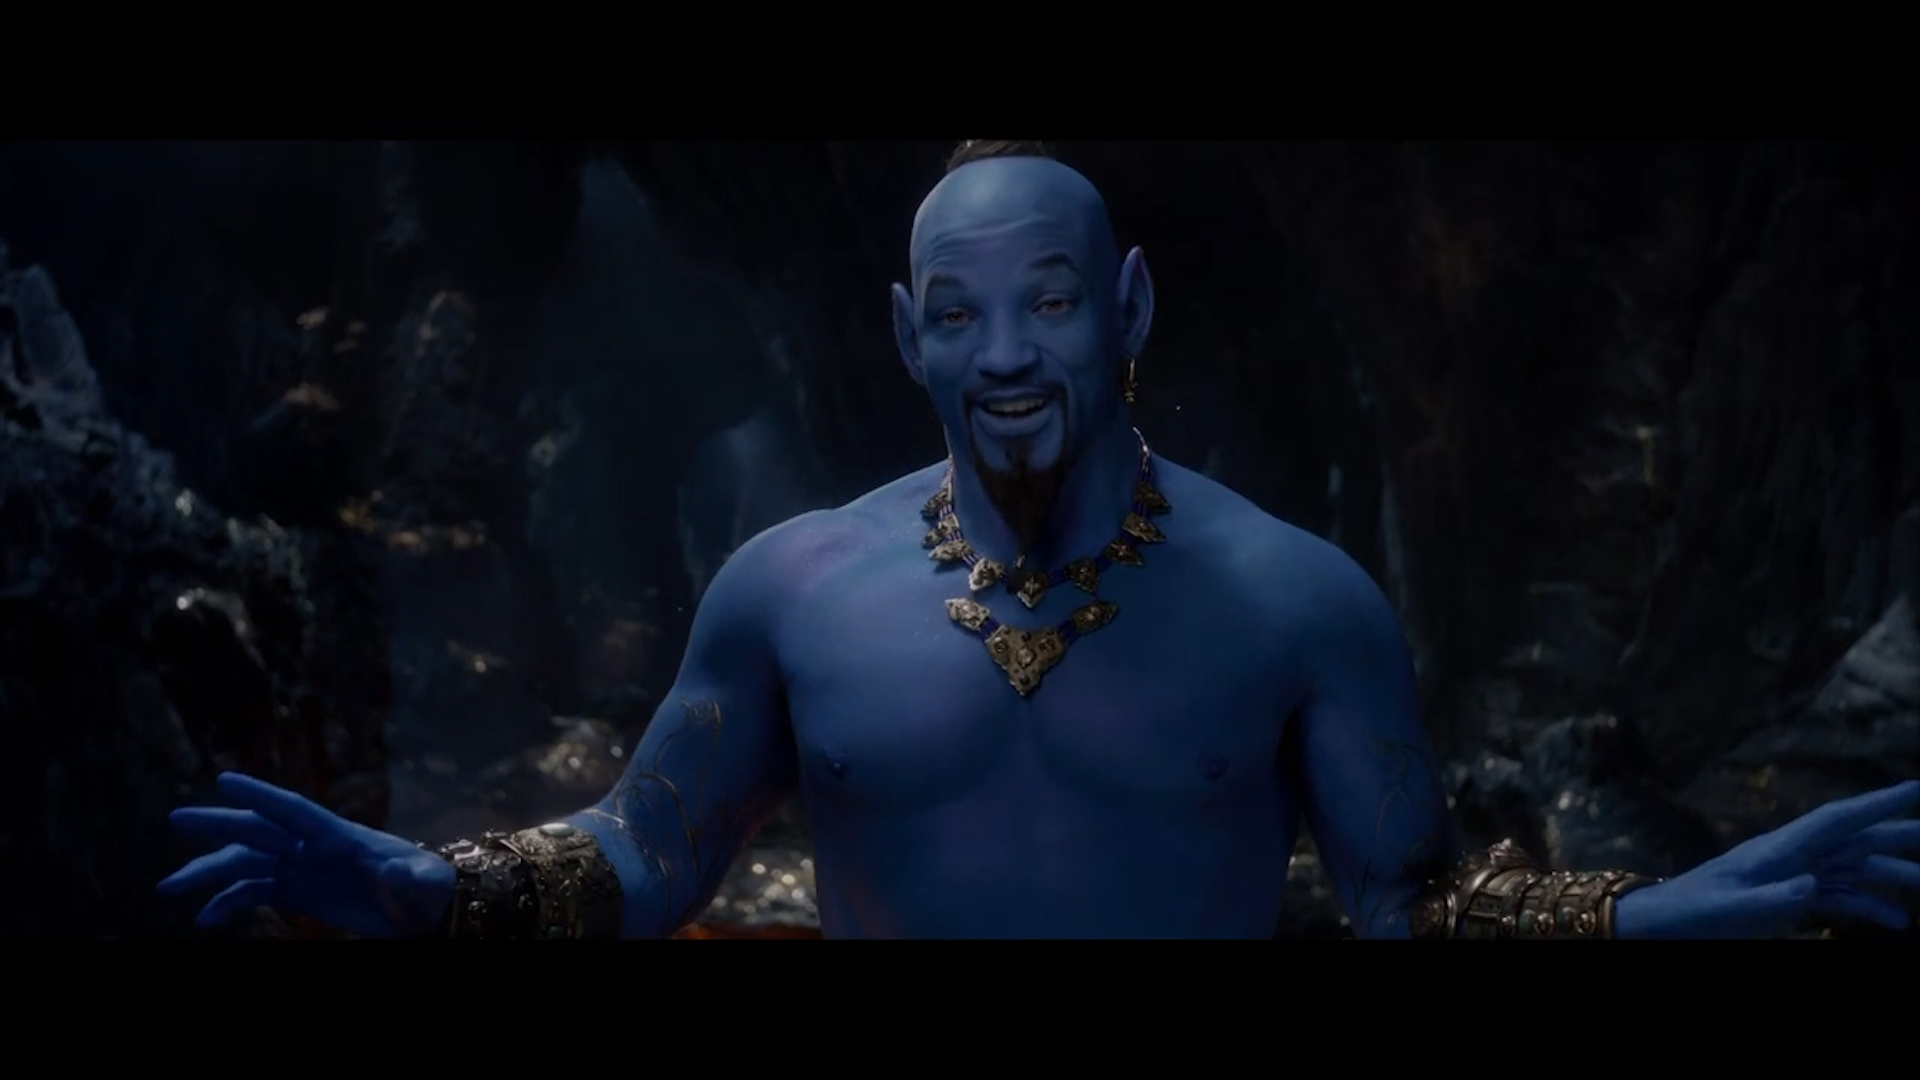 Aladdin trailer revealing Will Smith as the Genie airs during Grammys